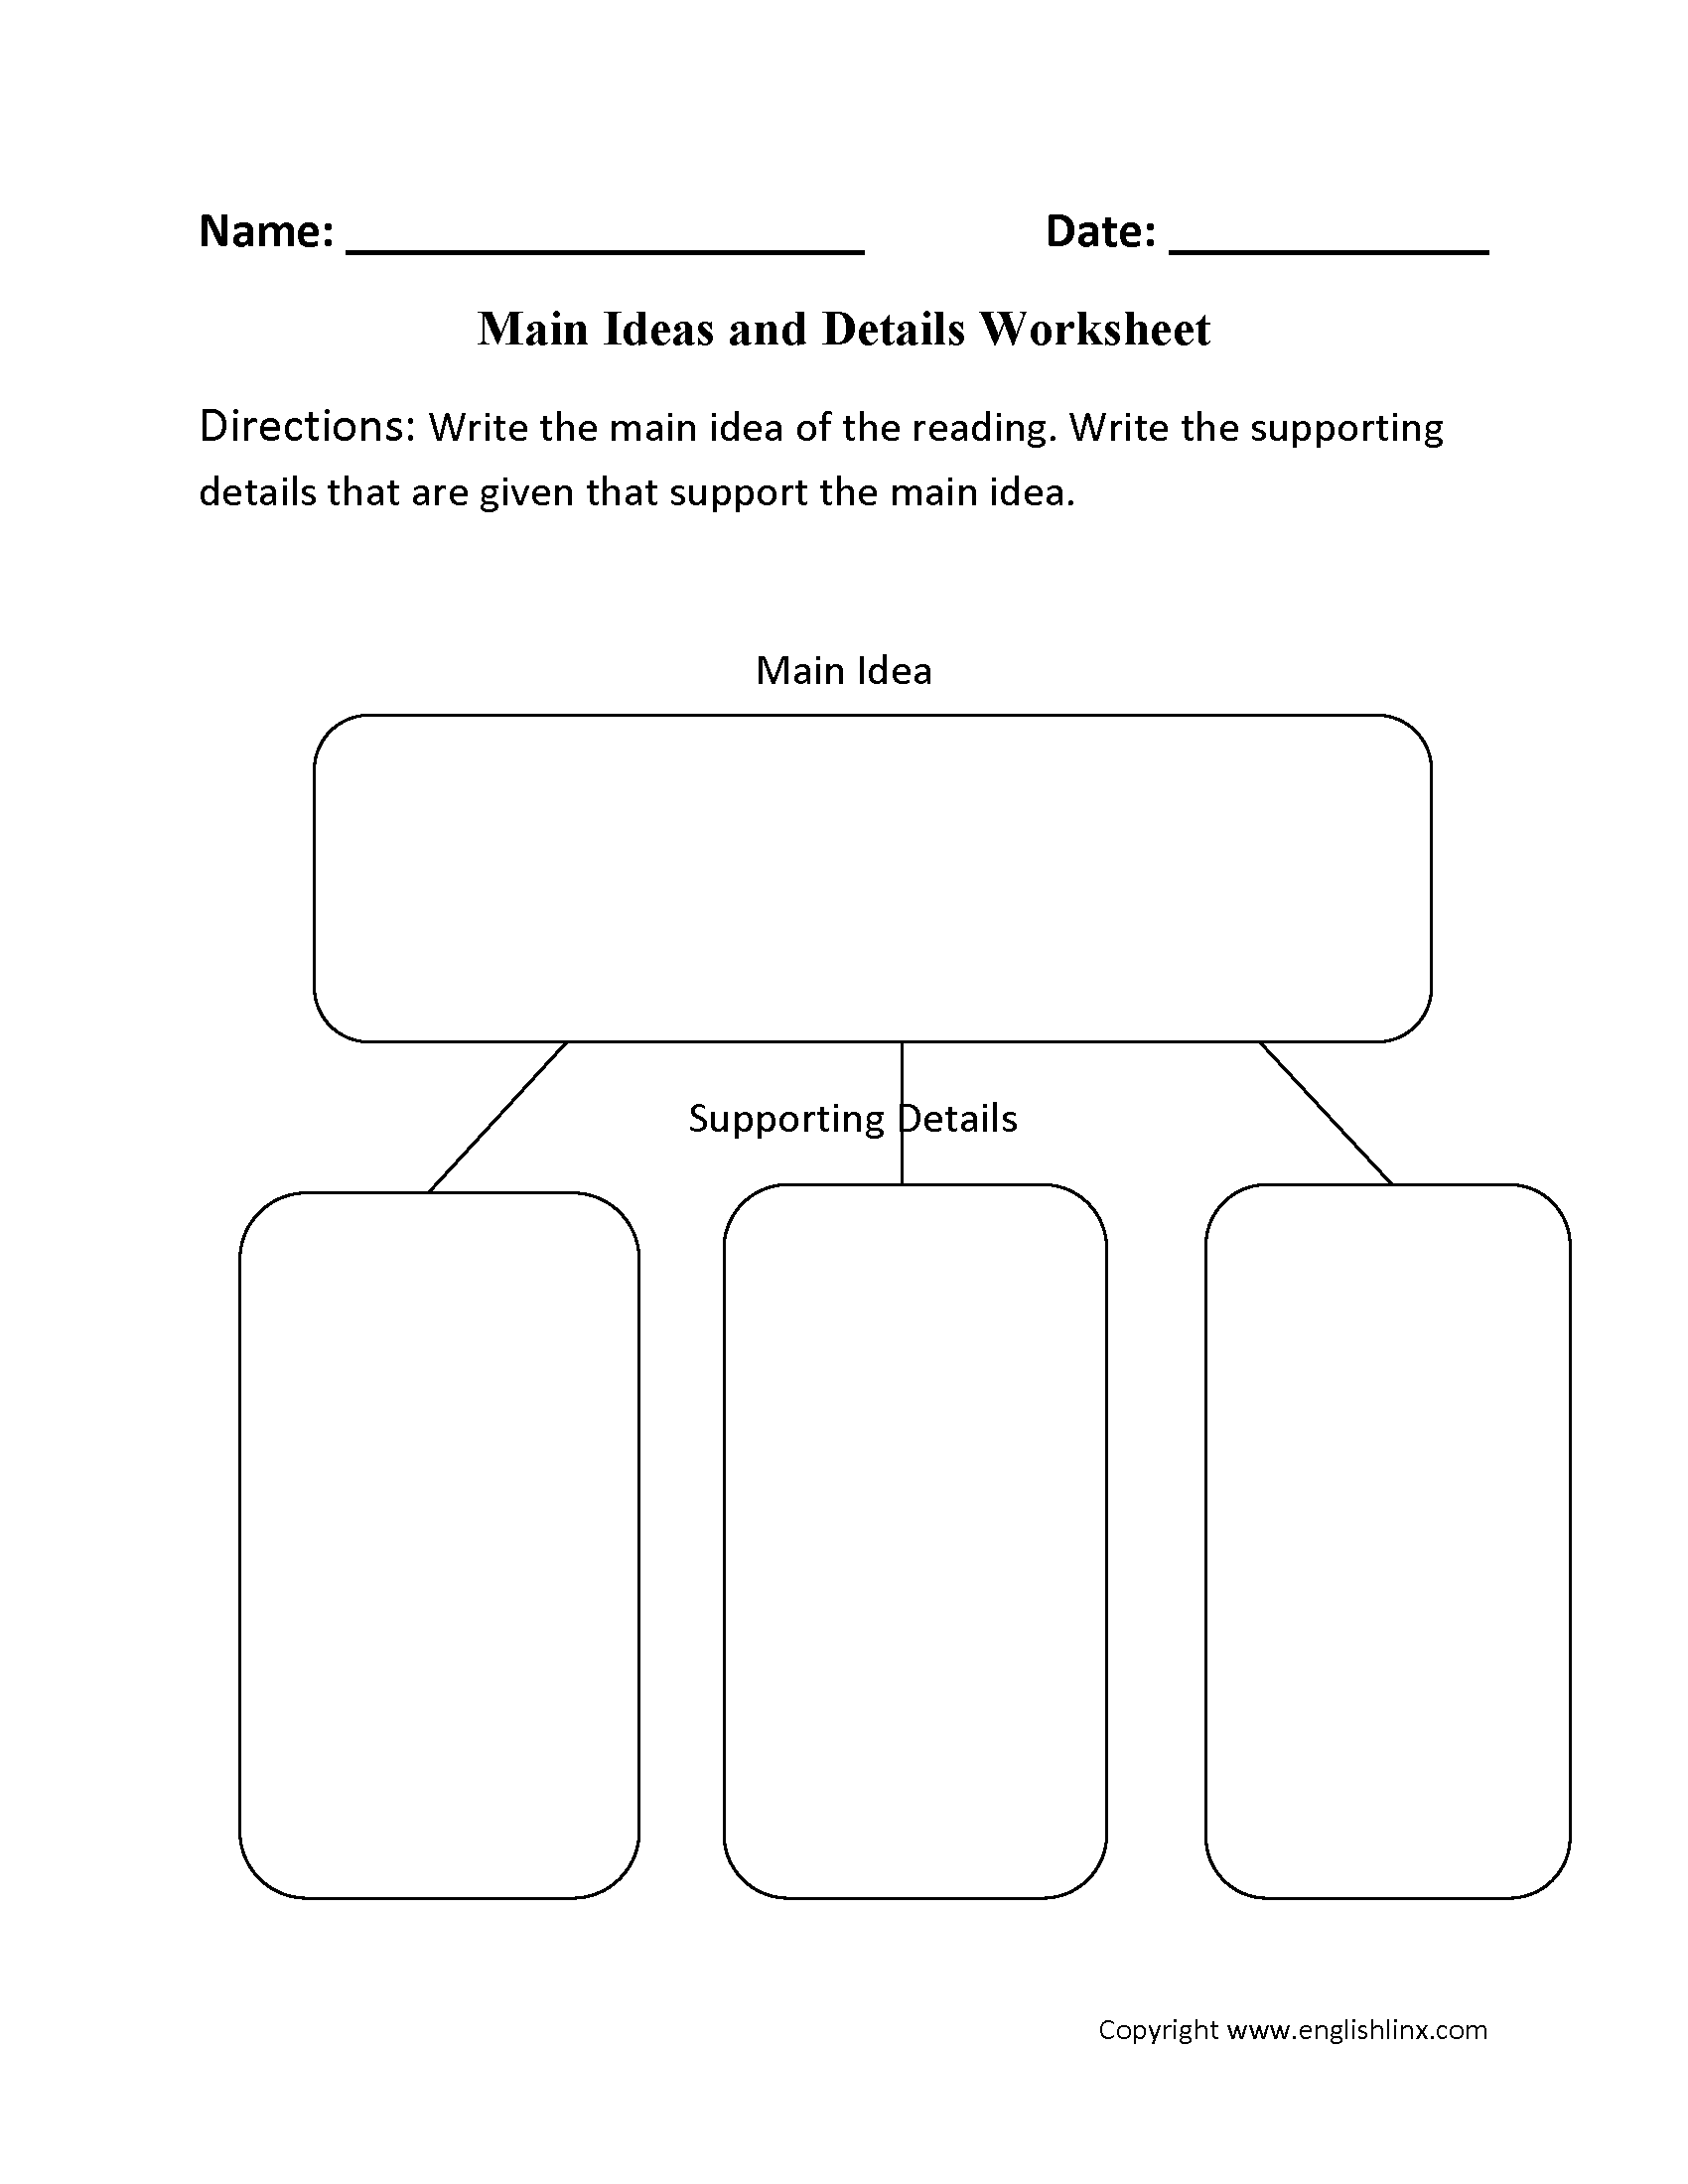 worksheet Free Main Idea Worksheets main idea details worksheet free worksheets library download and identifying supporting worksheets